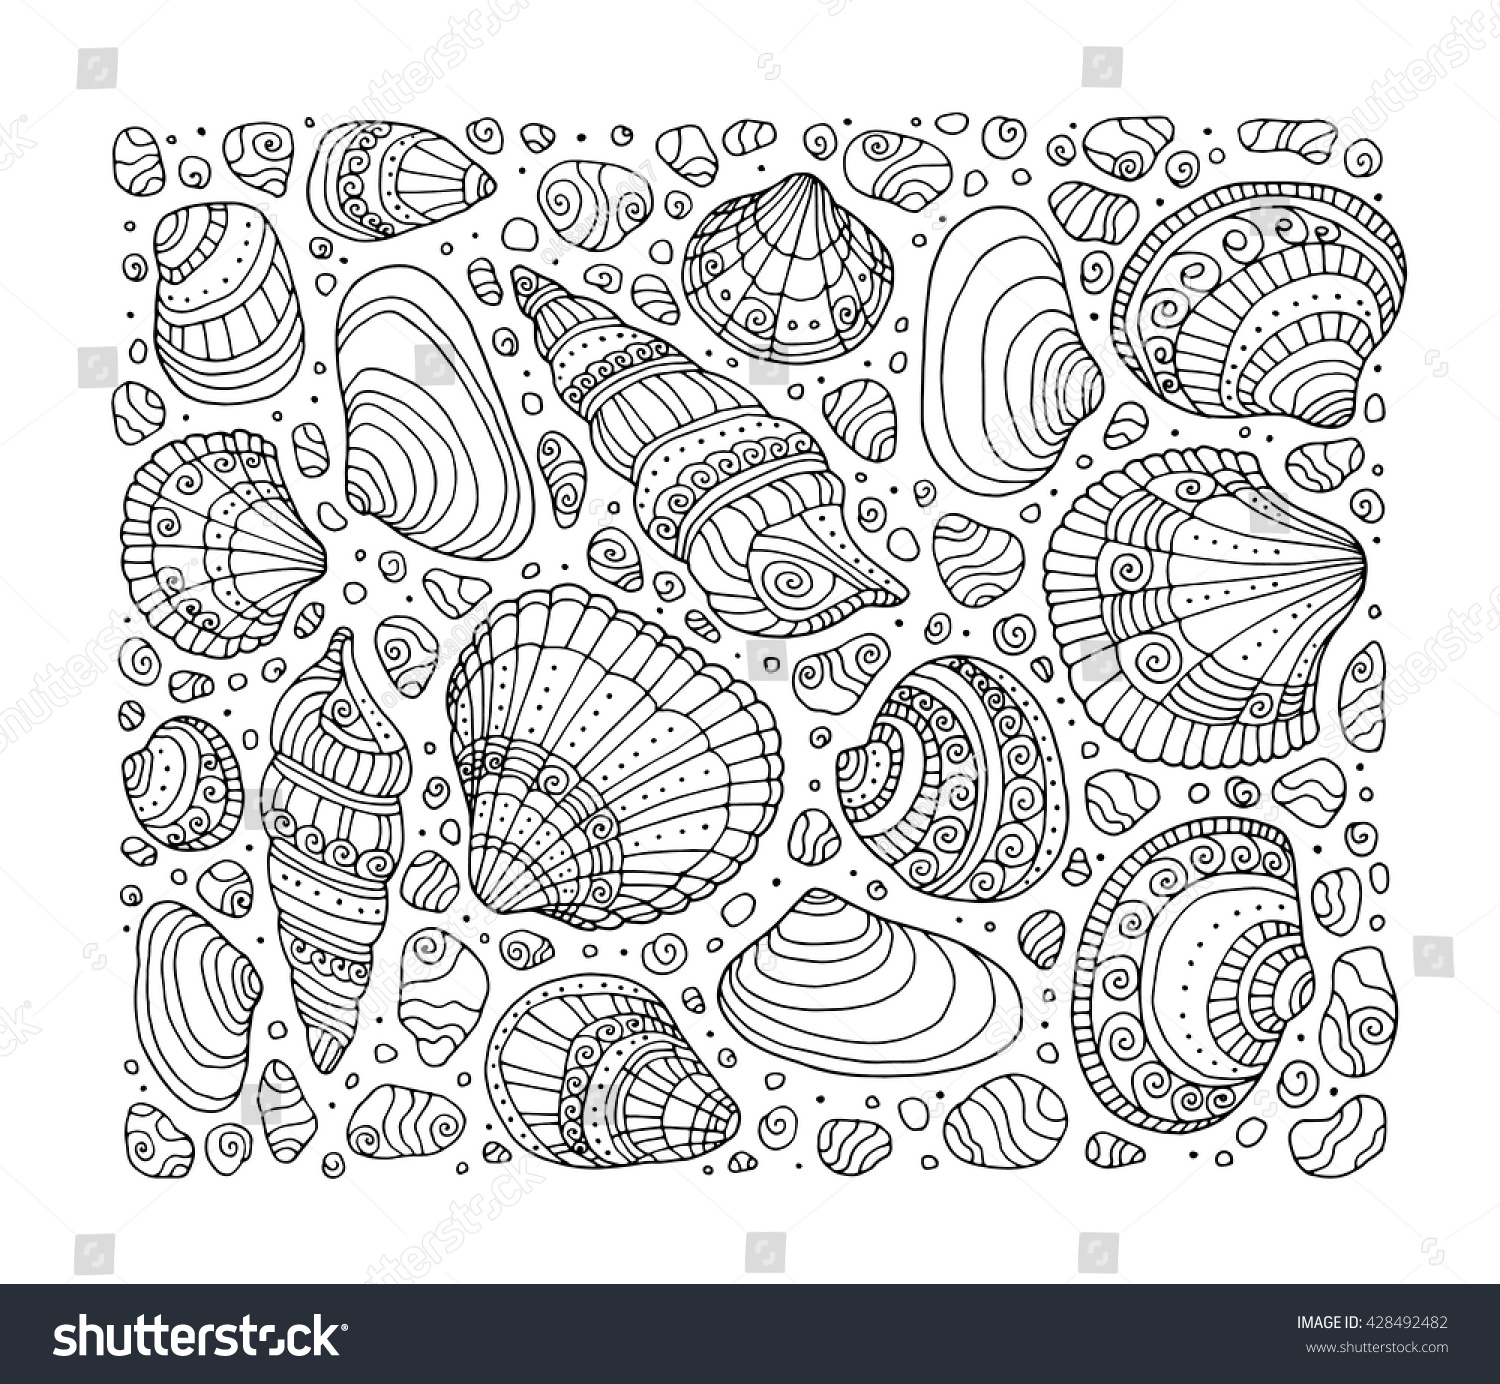 seashell pattern art background vector illustration zentangle coloring book page for adult - Zentangle Coloring Book